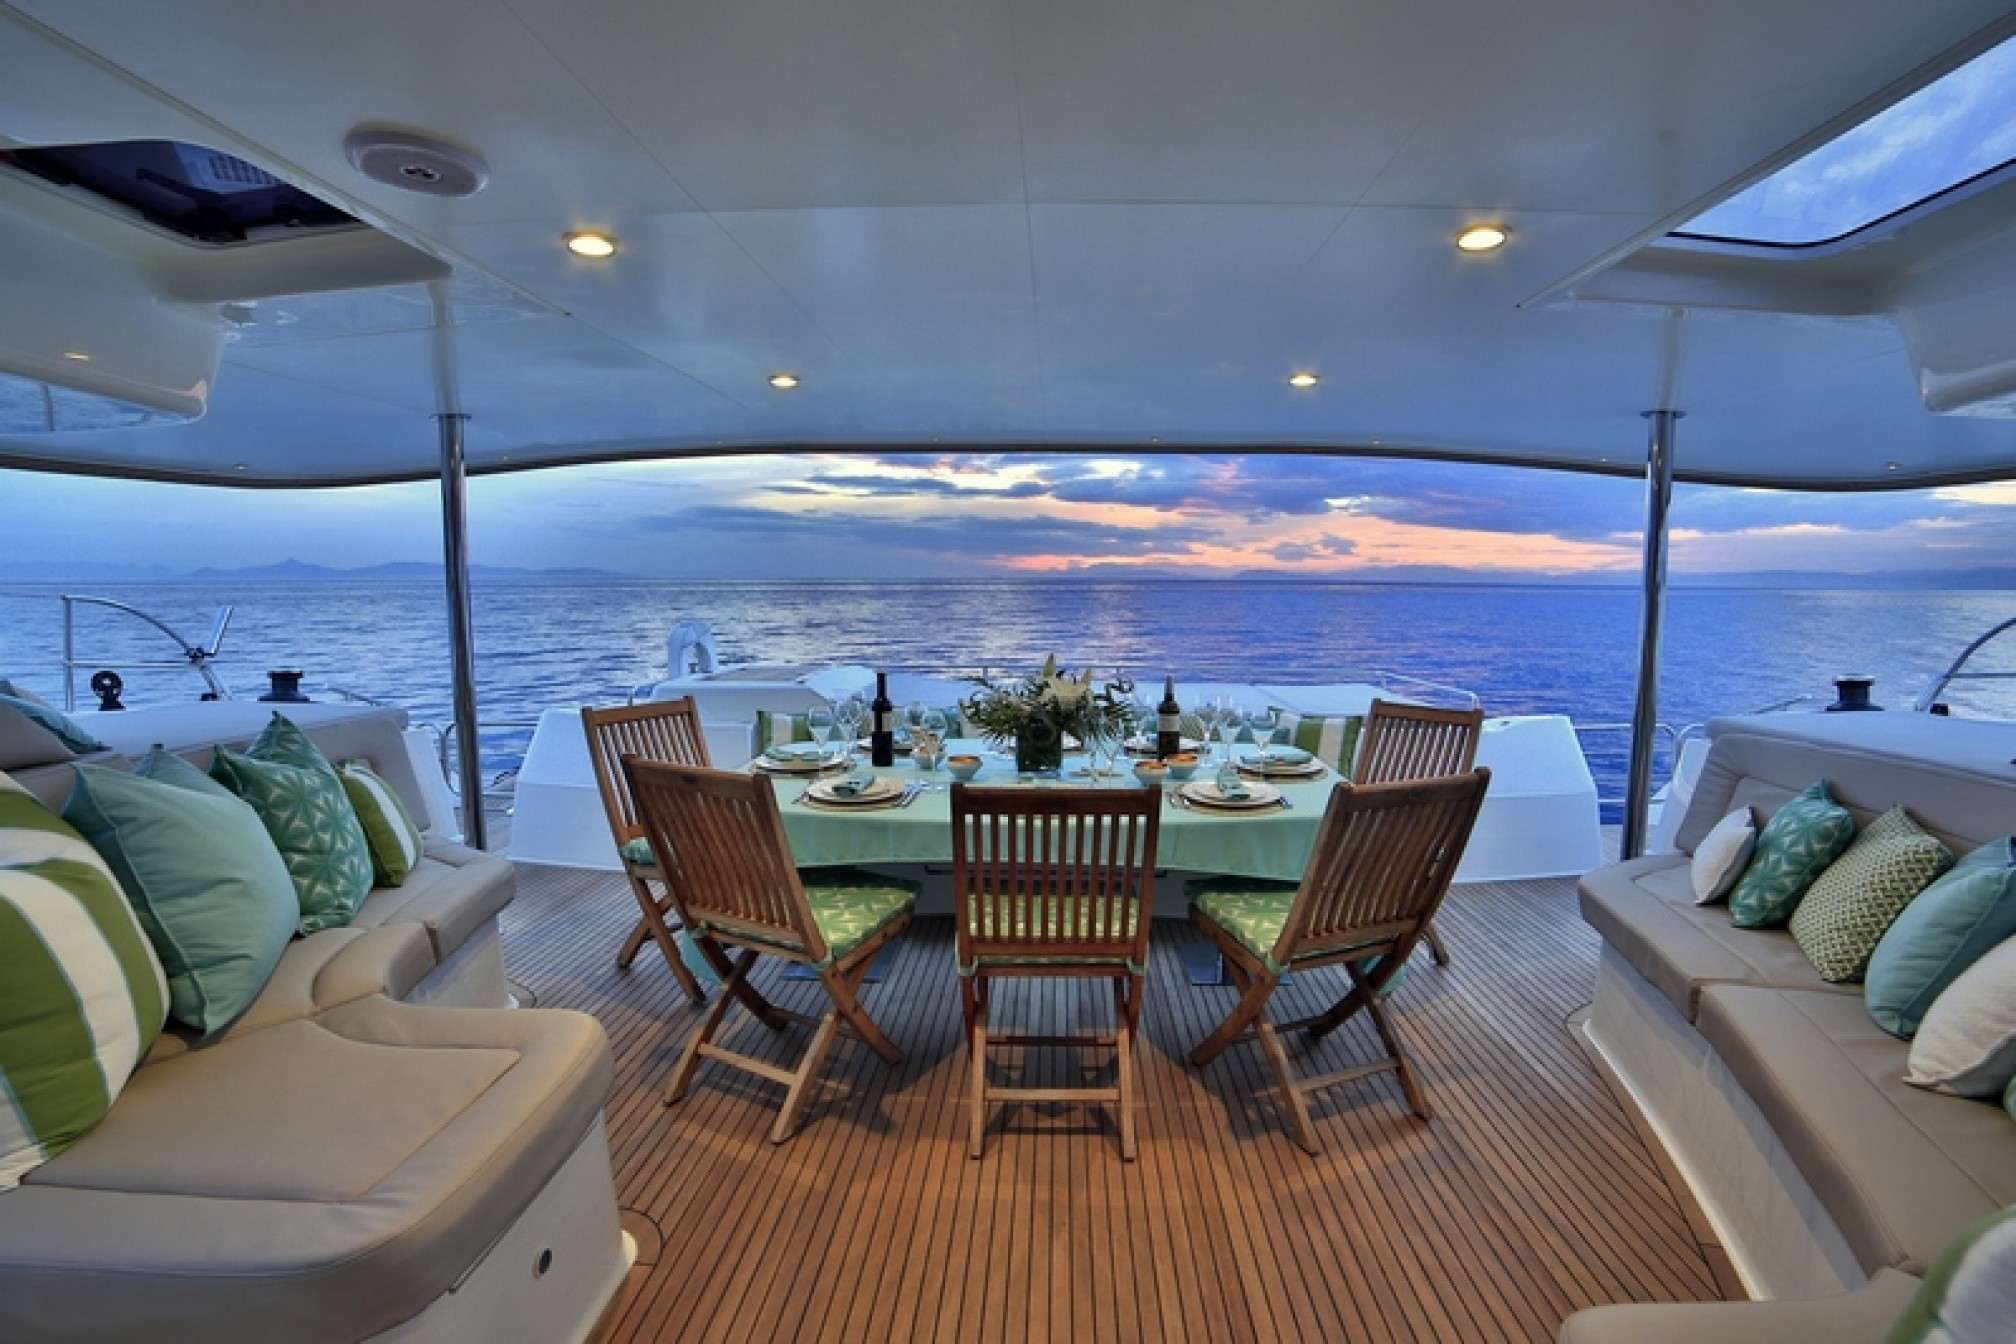 'World's End' catamaran charter deck